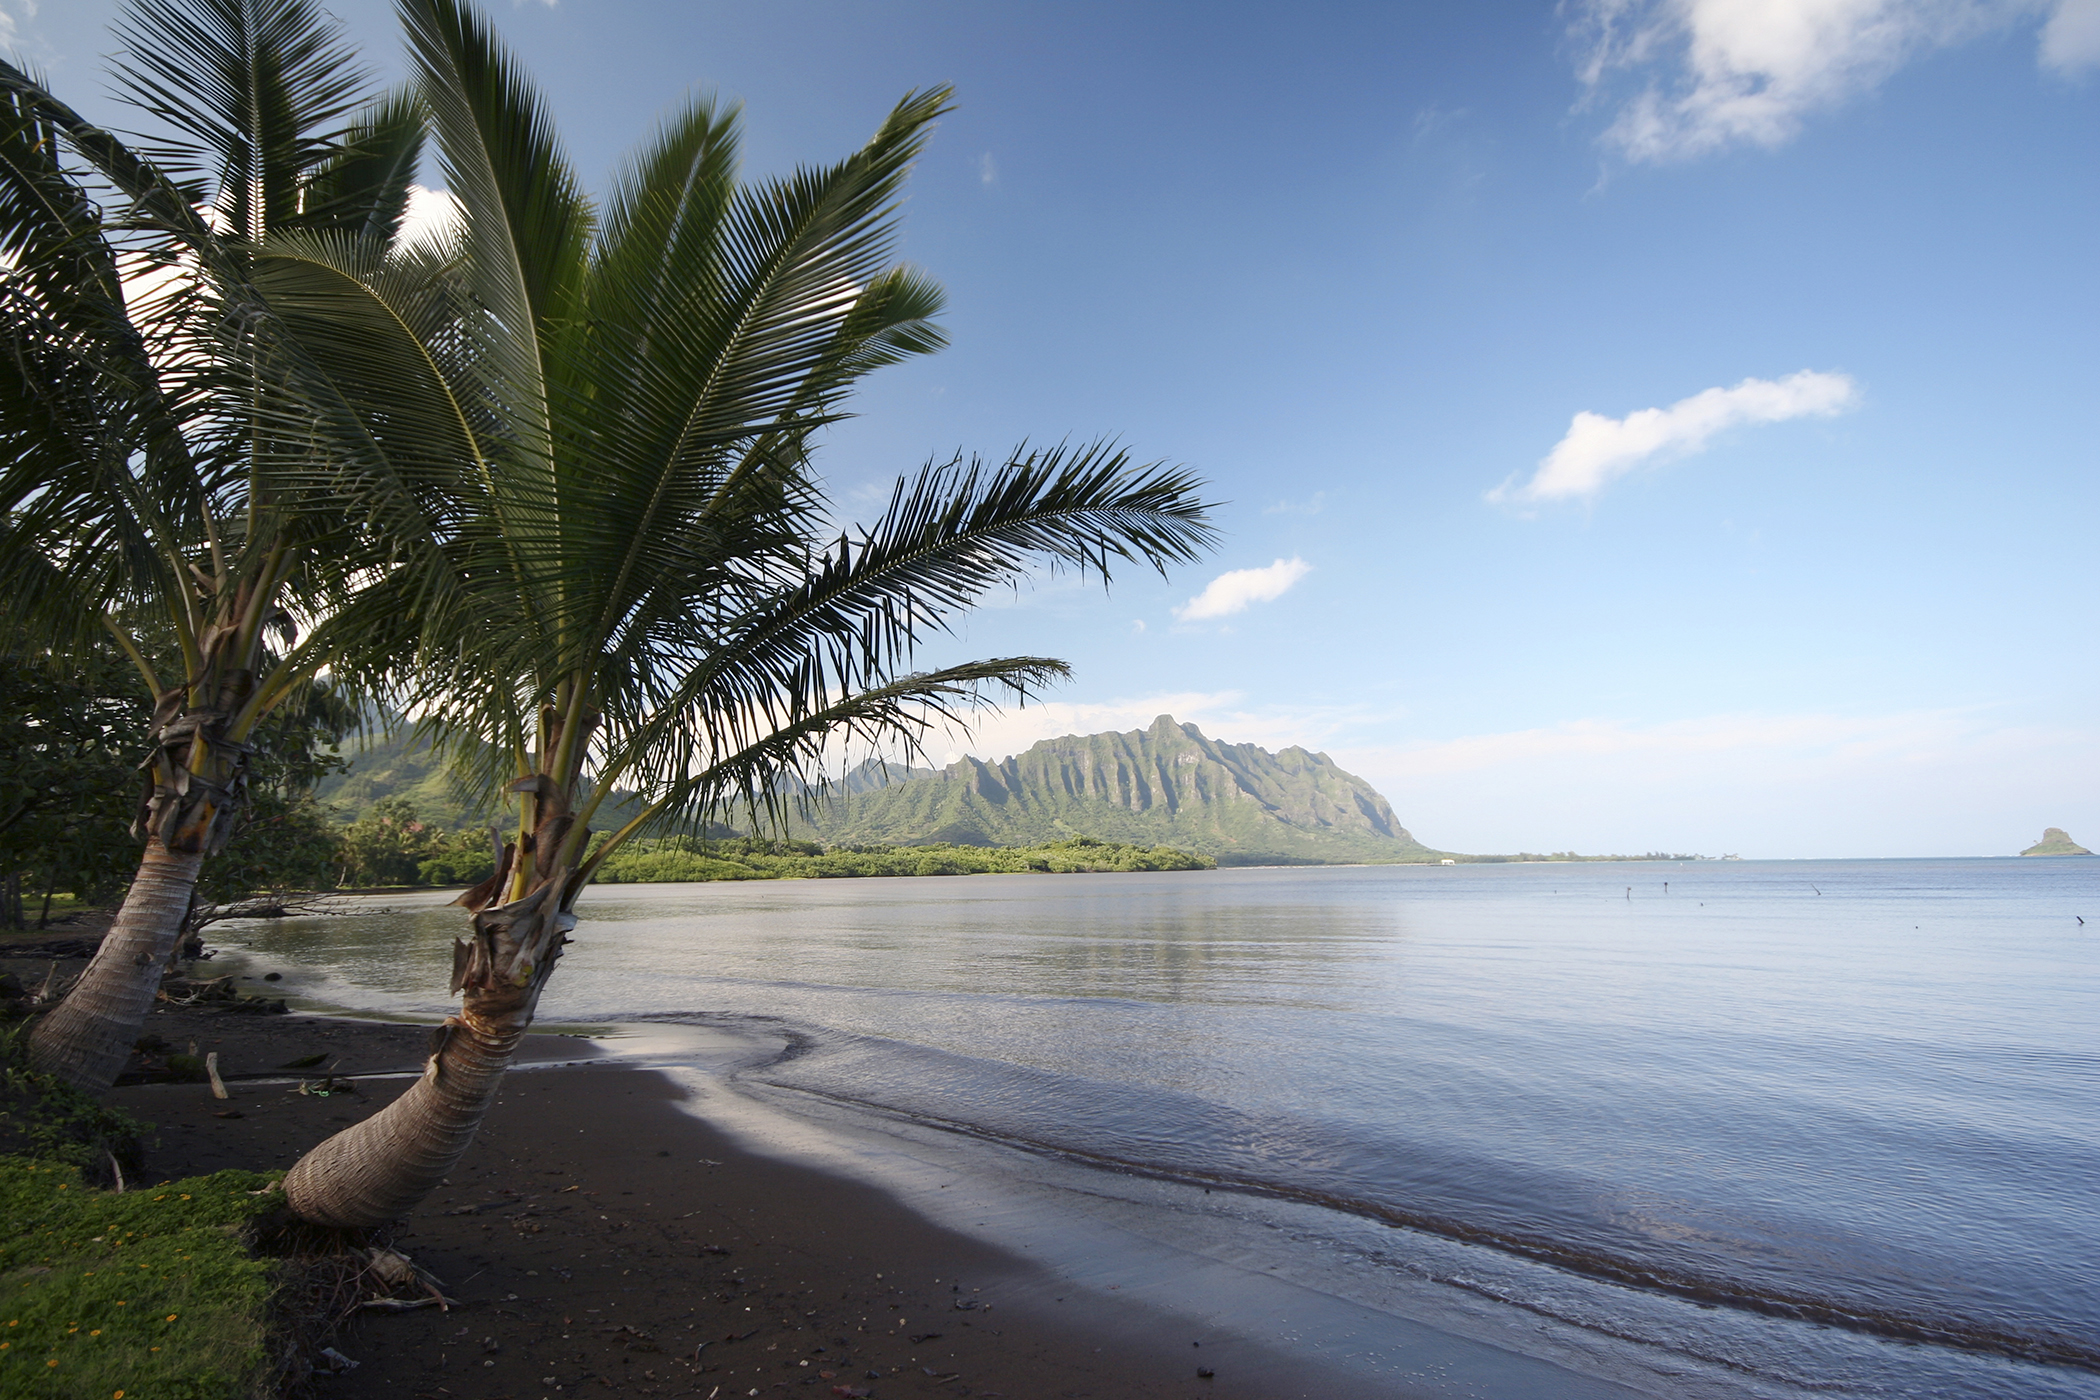 2. Koolaupoko, Hawaii:                             Cancer deaths in Hawaiian towns like Koolaupoko are among the lowest in the country.